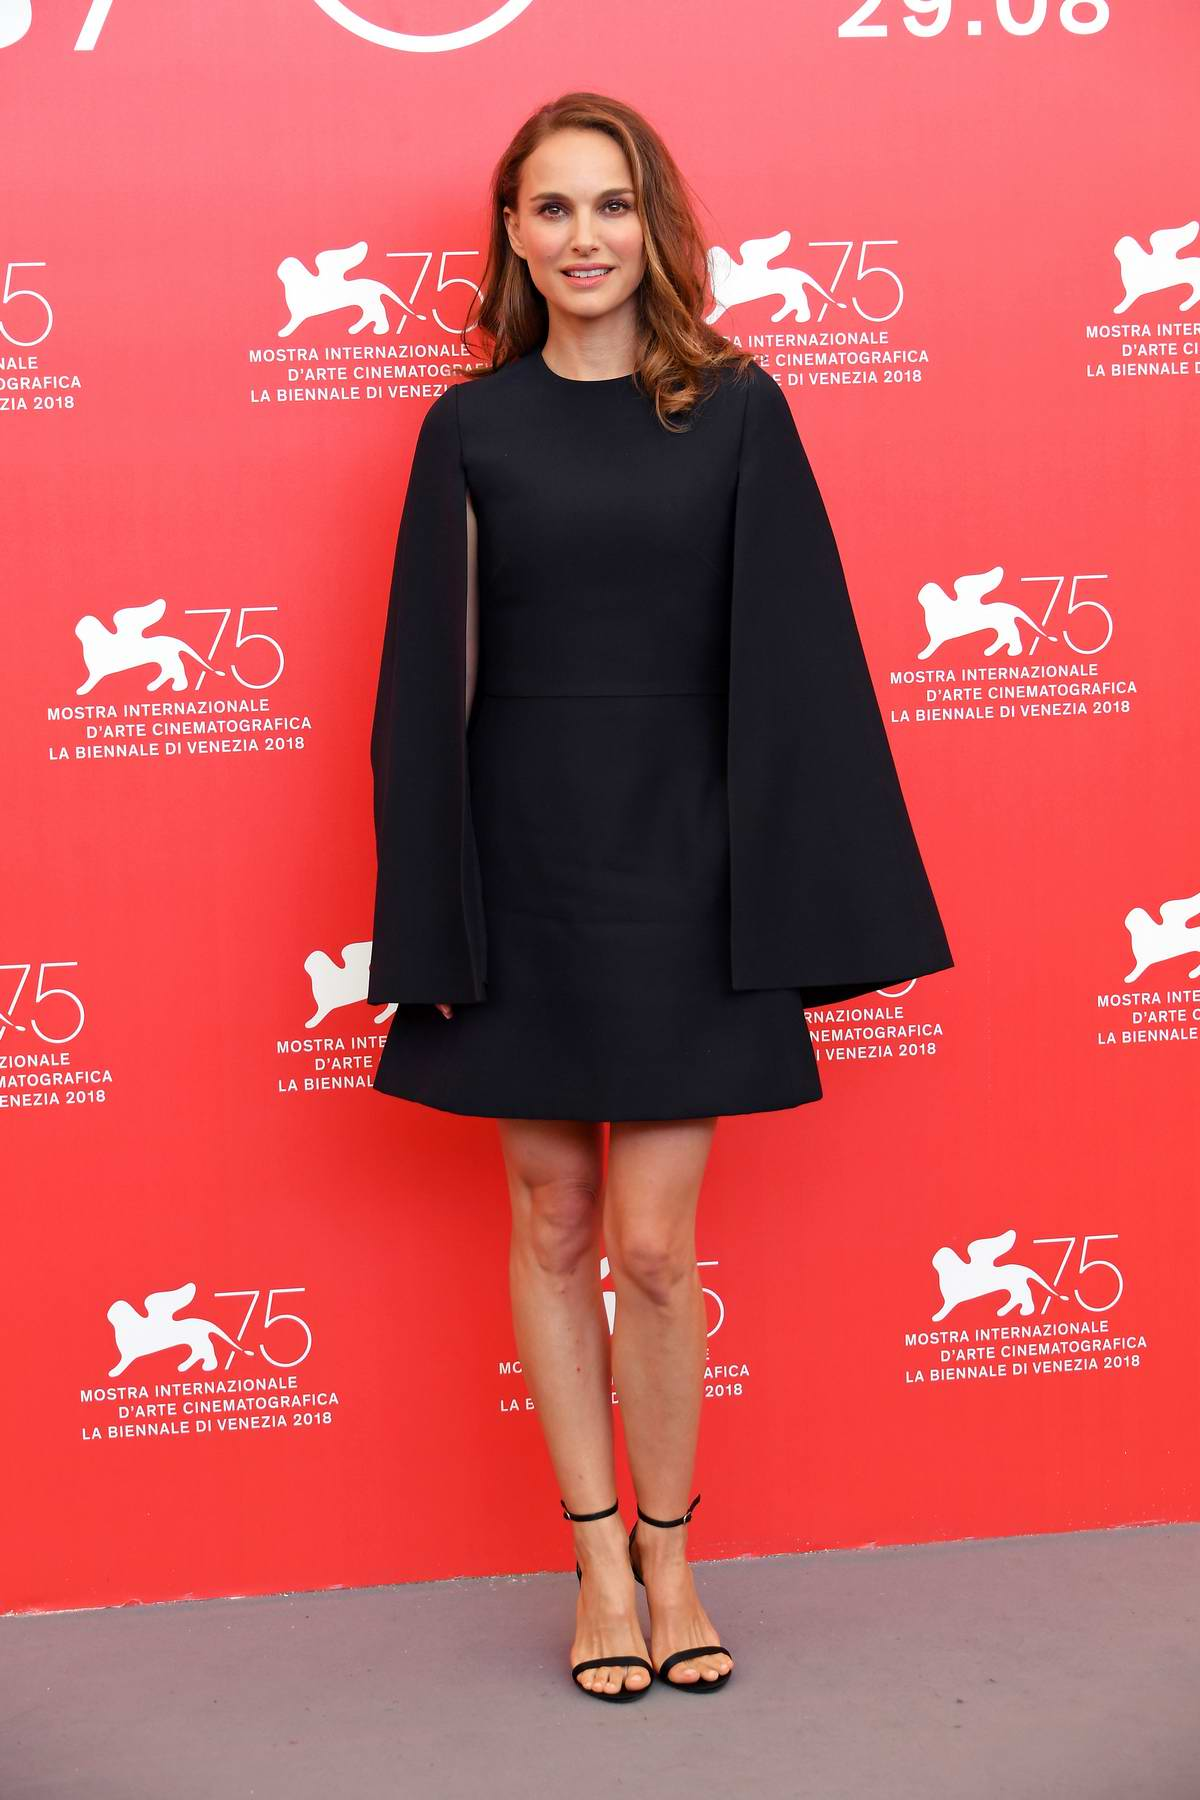 Natalie Portman attends 'Vox Lux' photocall during 75th Venice Film Festival in Venice, Italy